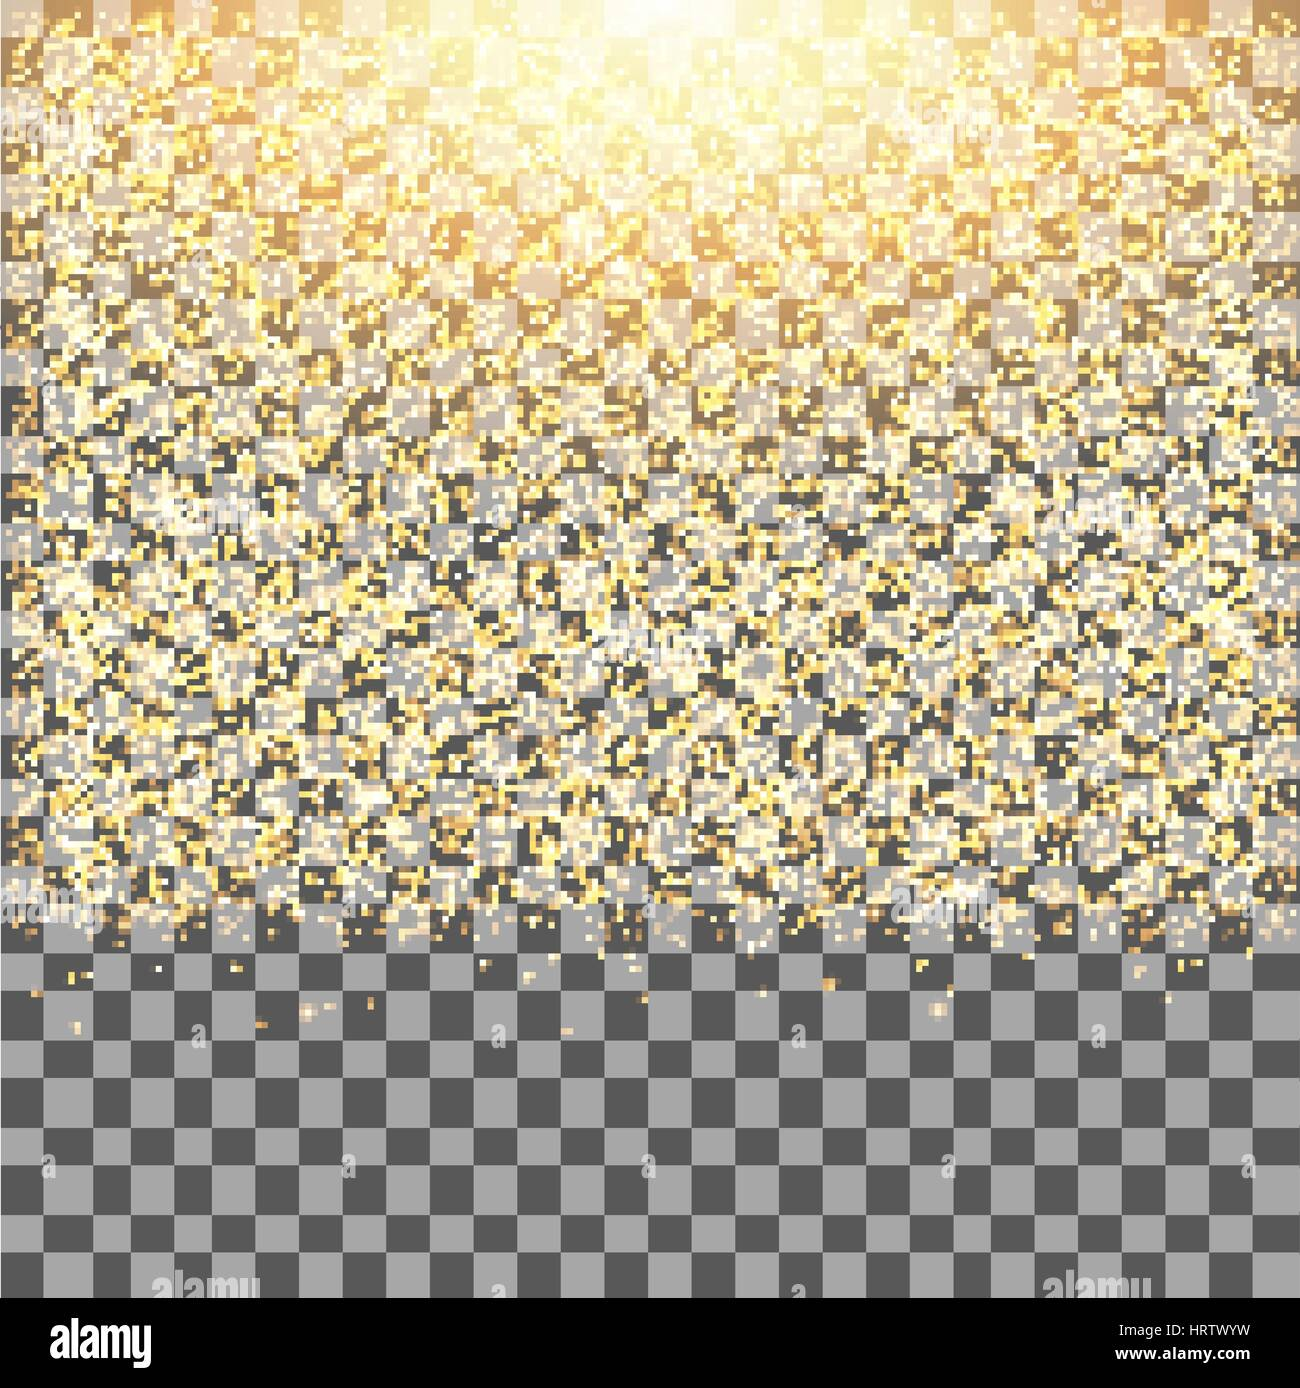 Gold glitter bright vector transparent background golden sparkles - Gold Glow Glitter Sparkles On Transparent Background Falling Dust Vector Illustration